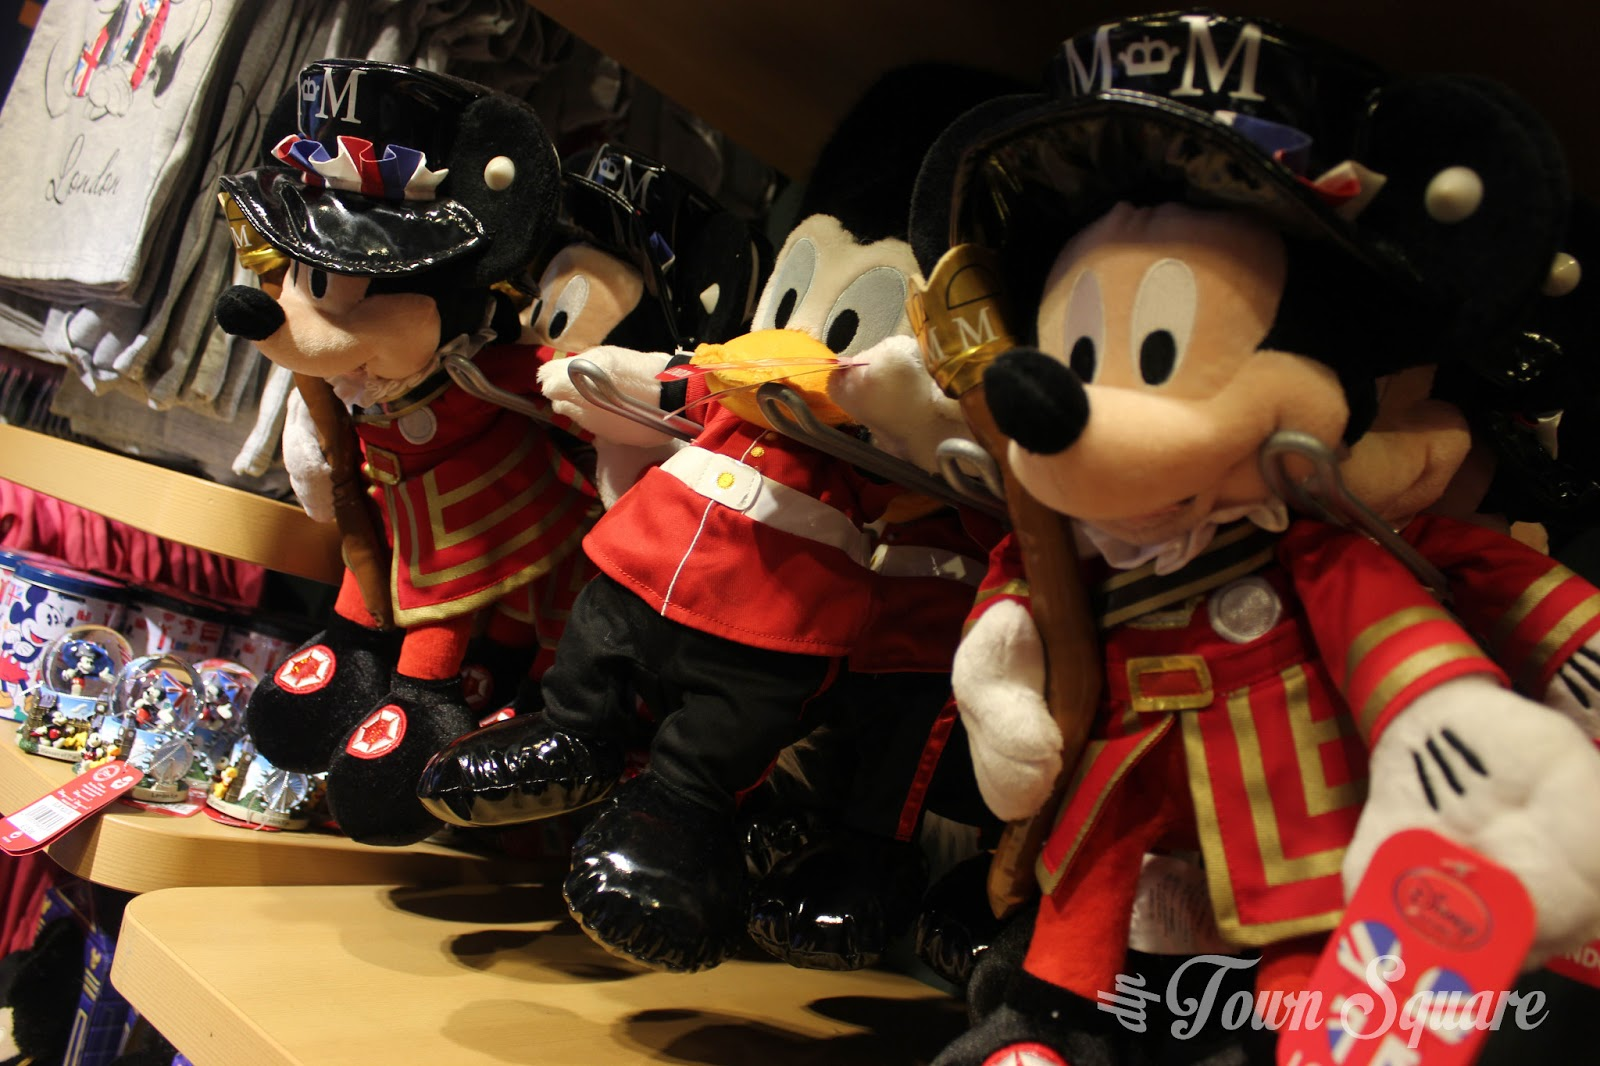 Mickey and Donald london plush toy